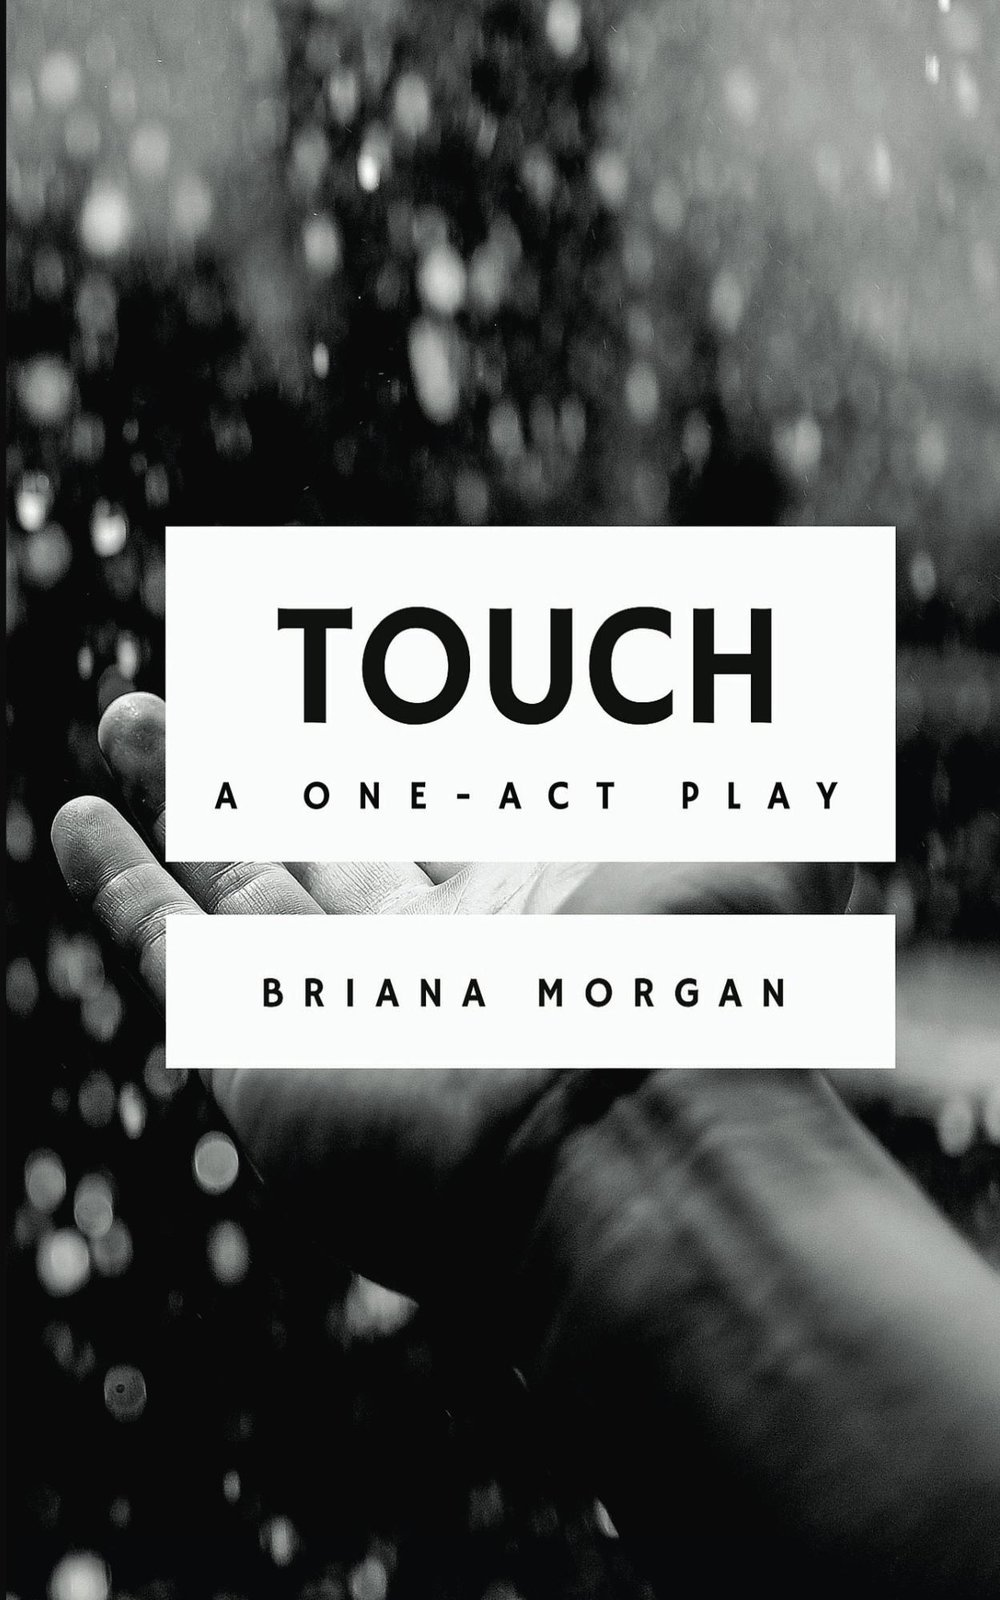 Touch by playwright Briana Morgan